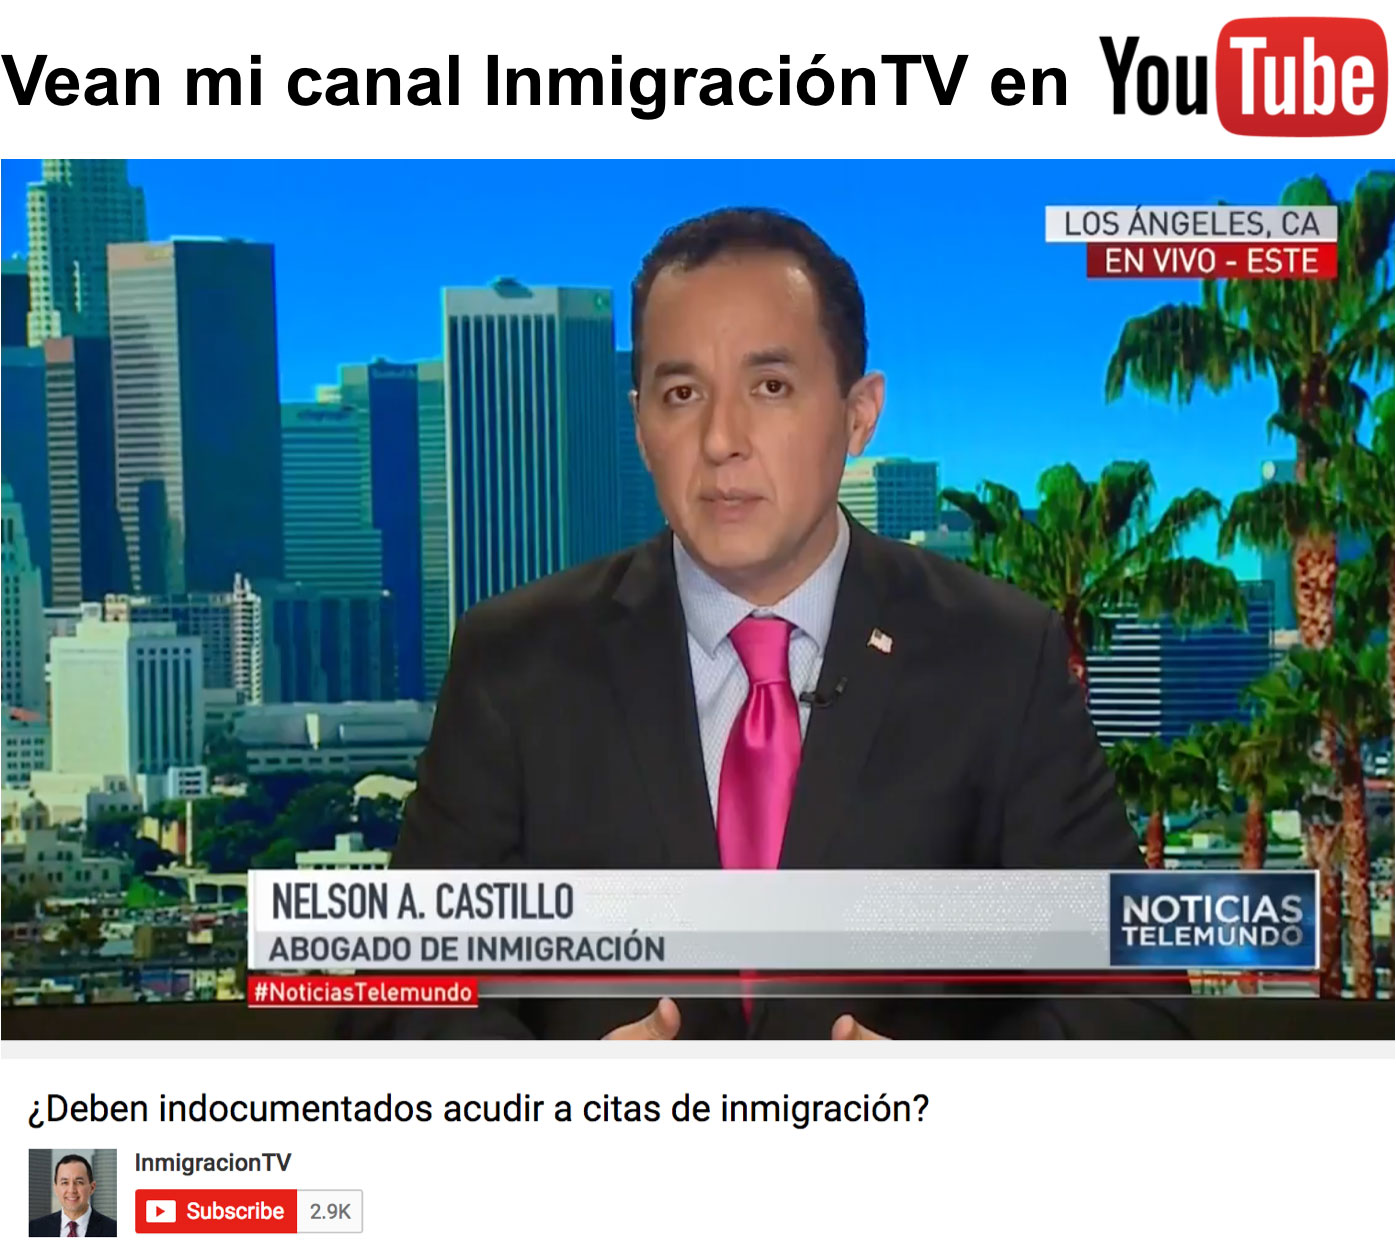 InmigracionTV YouTube